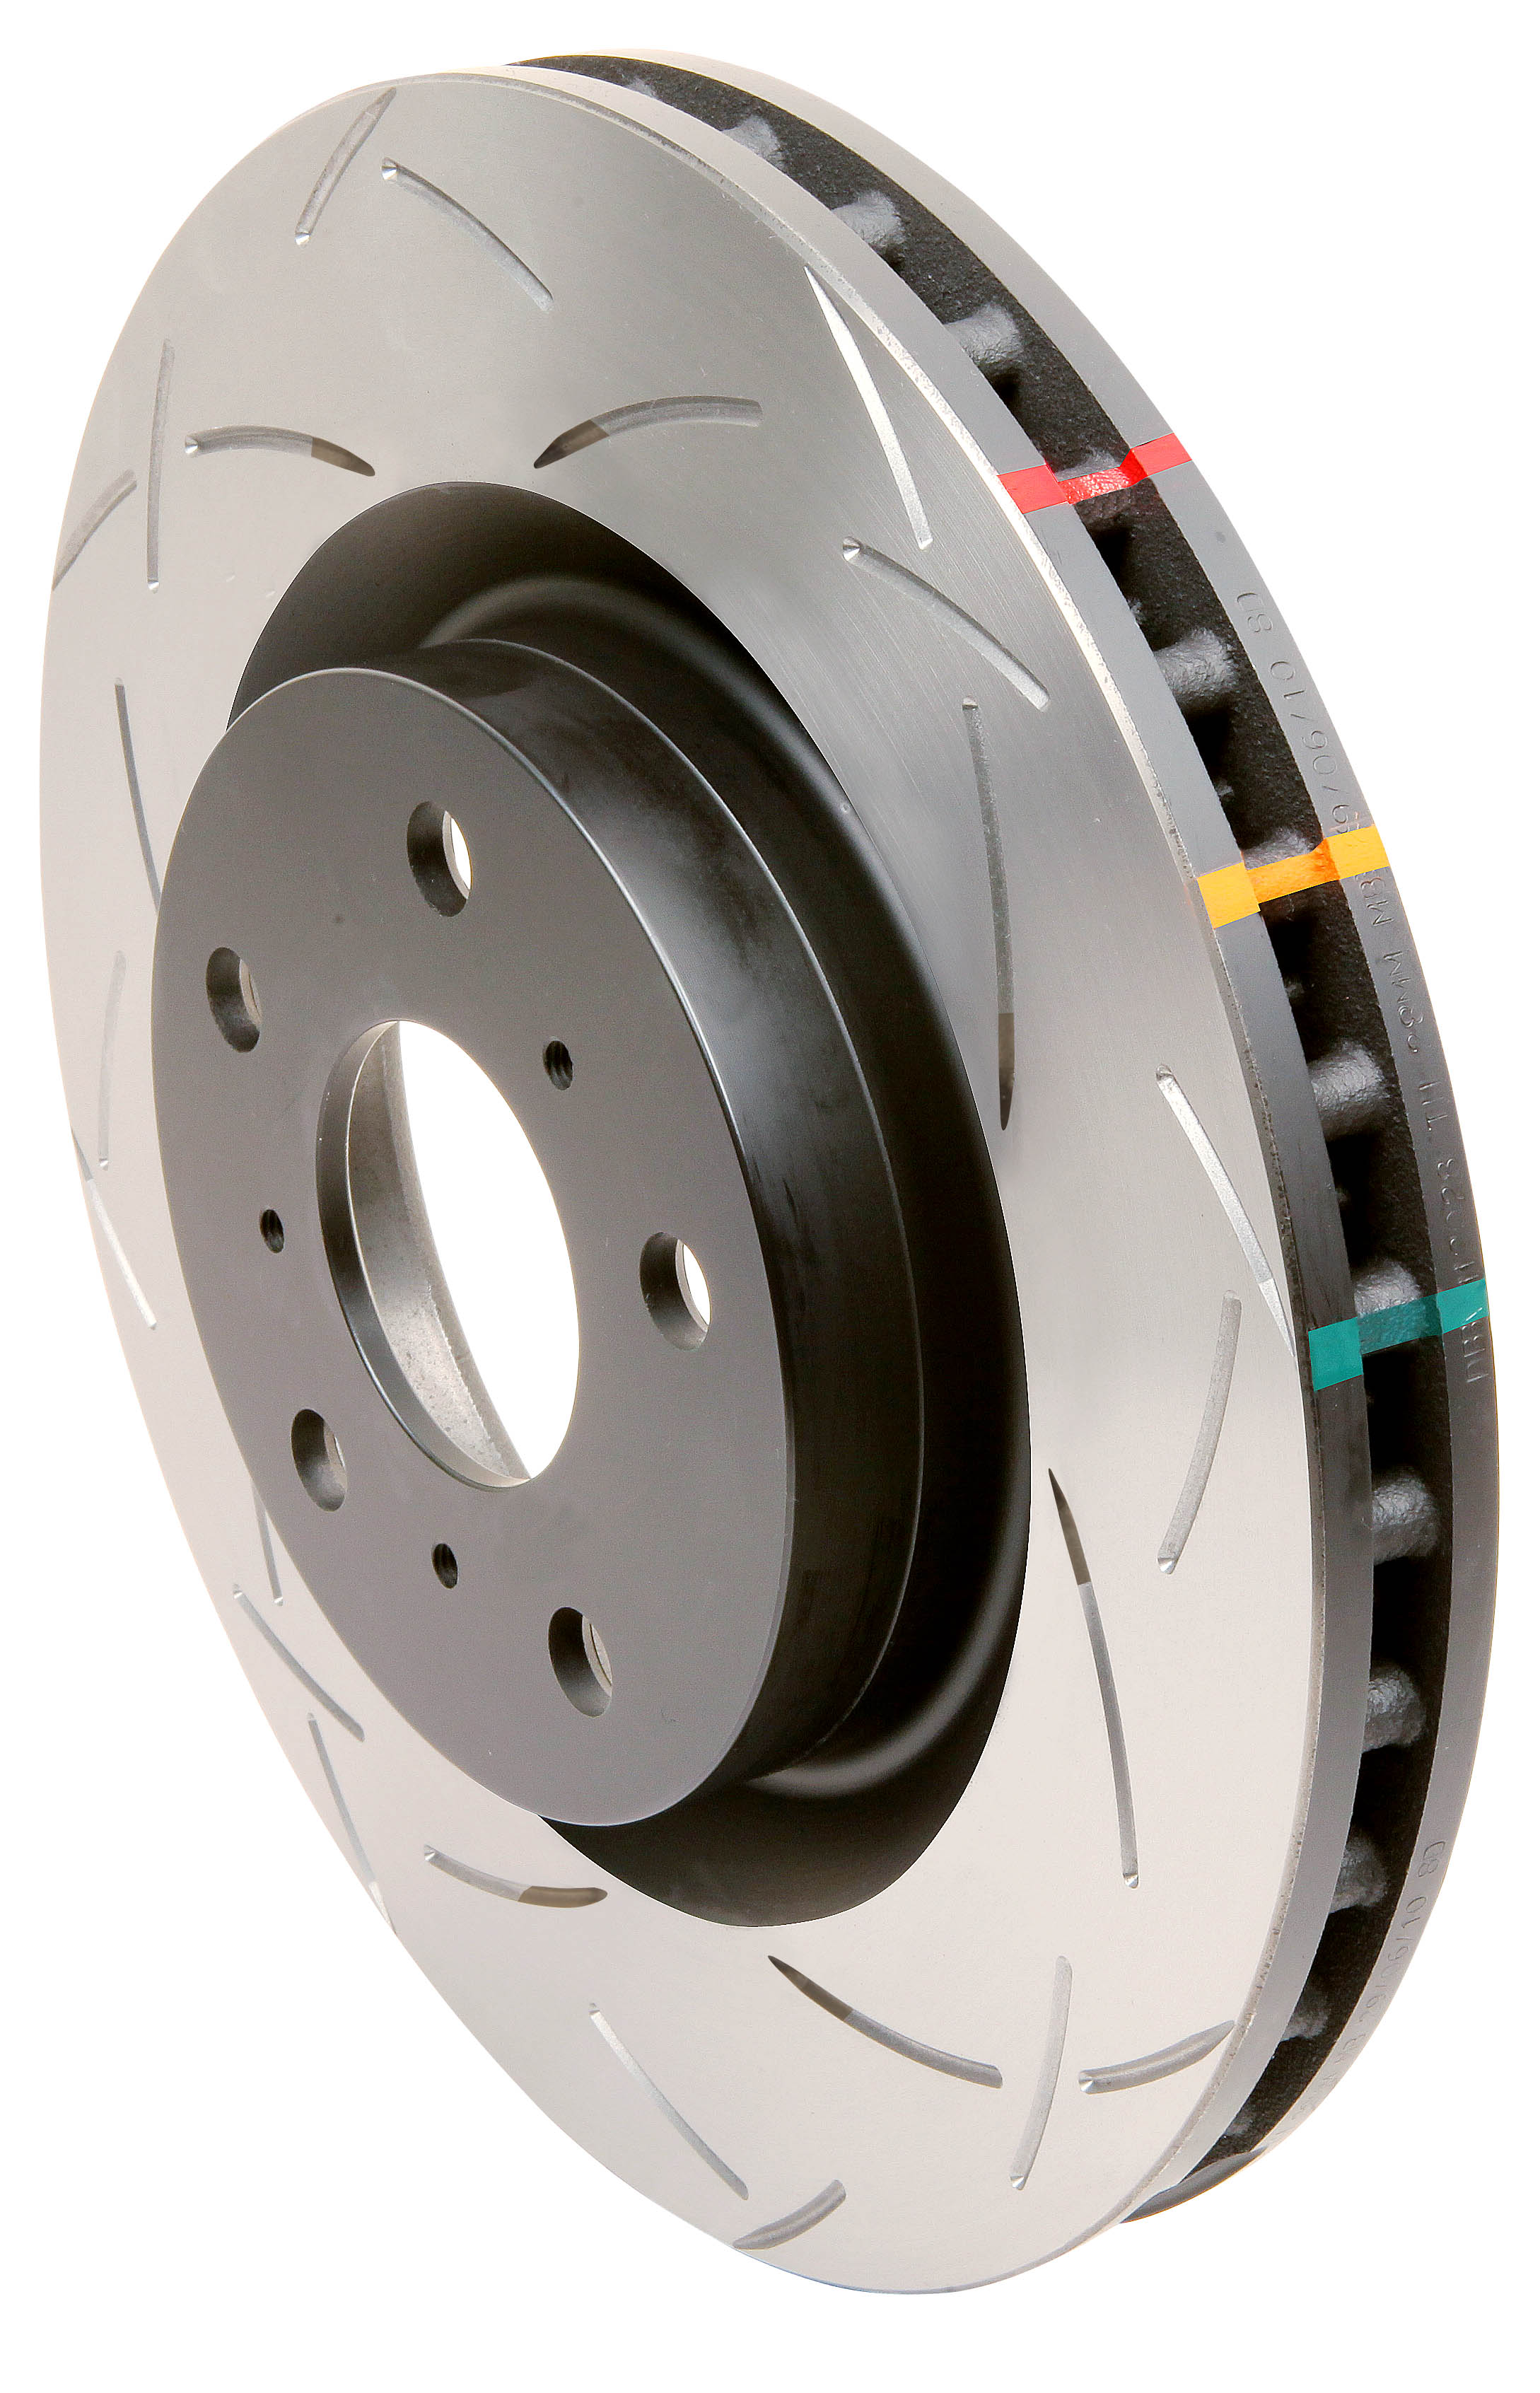 DBA T3 4000 Series - T-Slot Uni-Directional Slotted Rotor - DBA 42550S